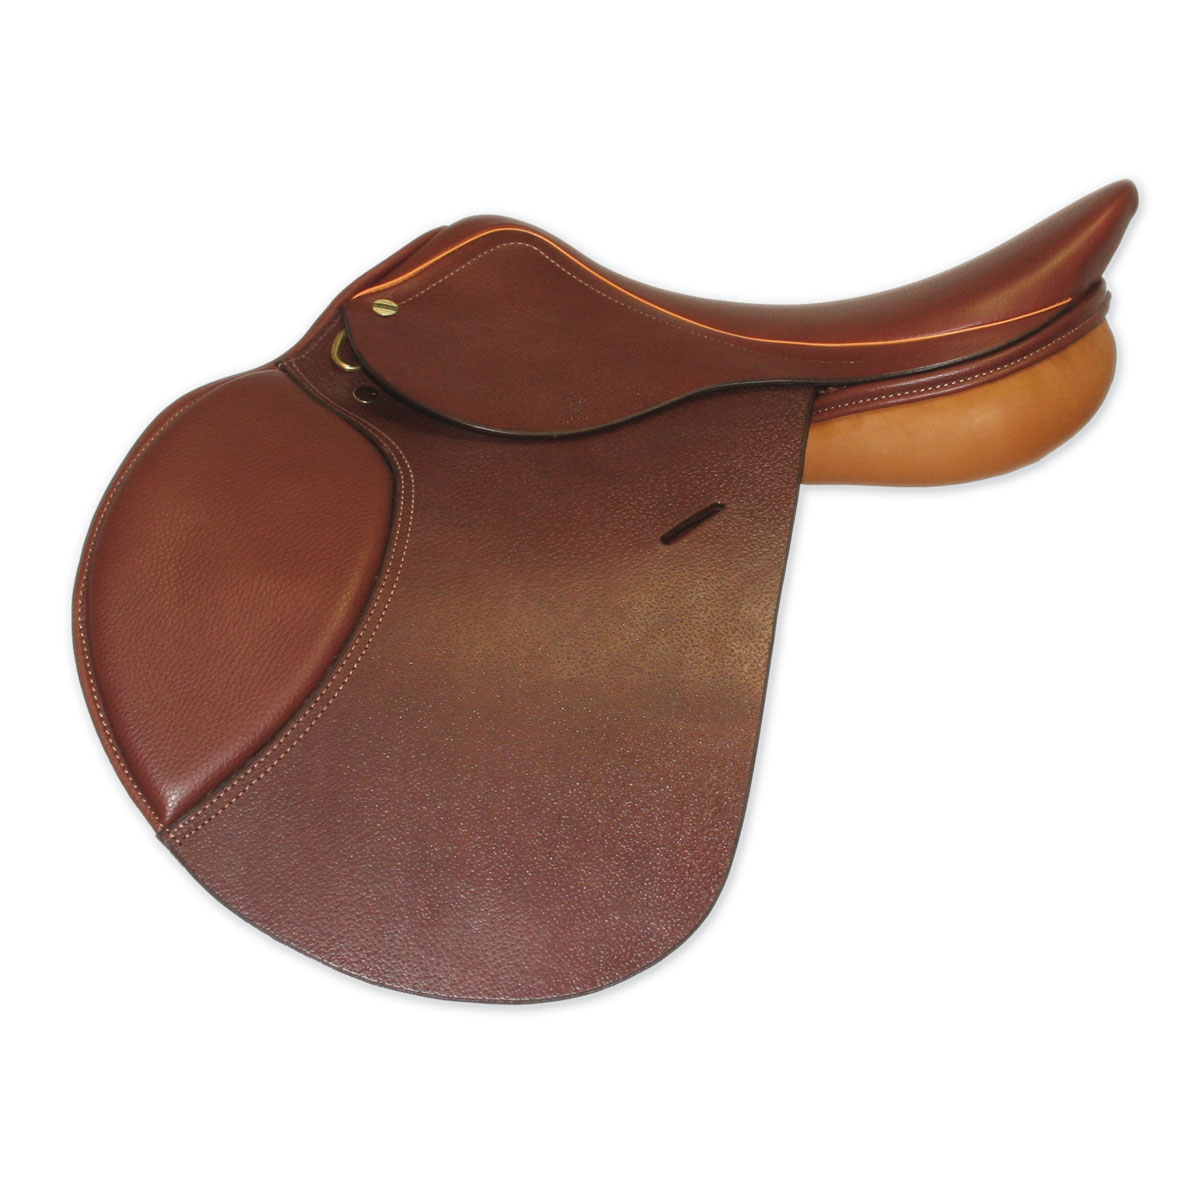 HDR Advantage Close Contact Saddle